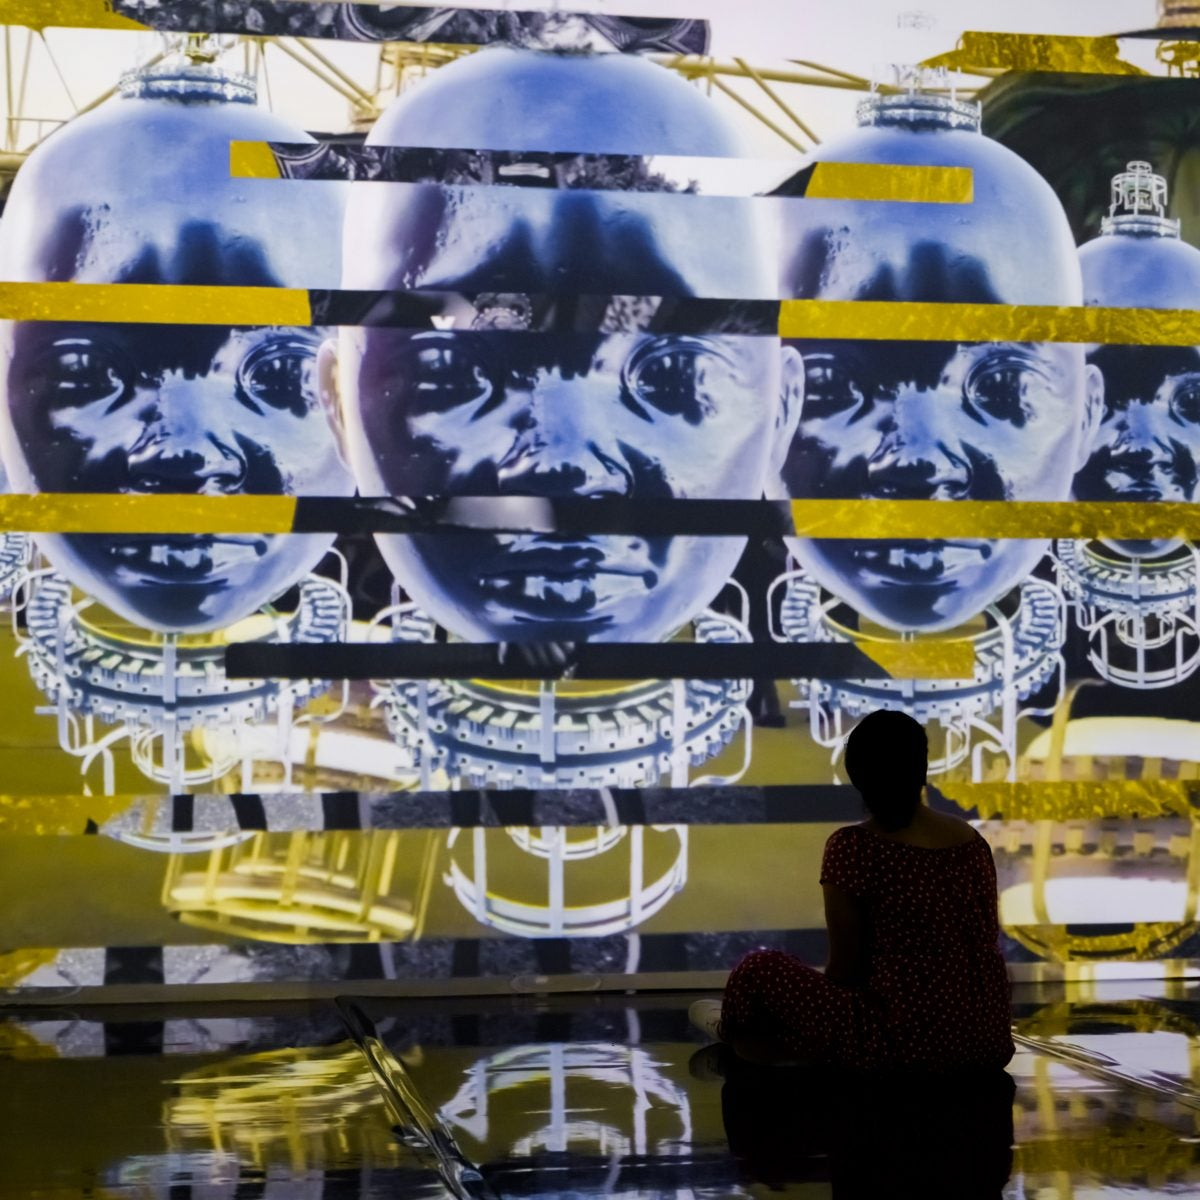 The Stories of Black People Don't Begin With Slavery. This New Pan-African Exhibit Blending Art and Technology Shows How.